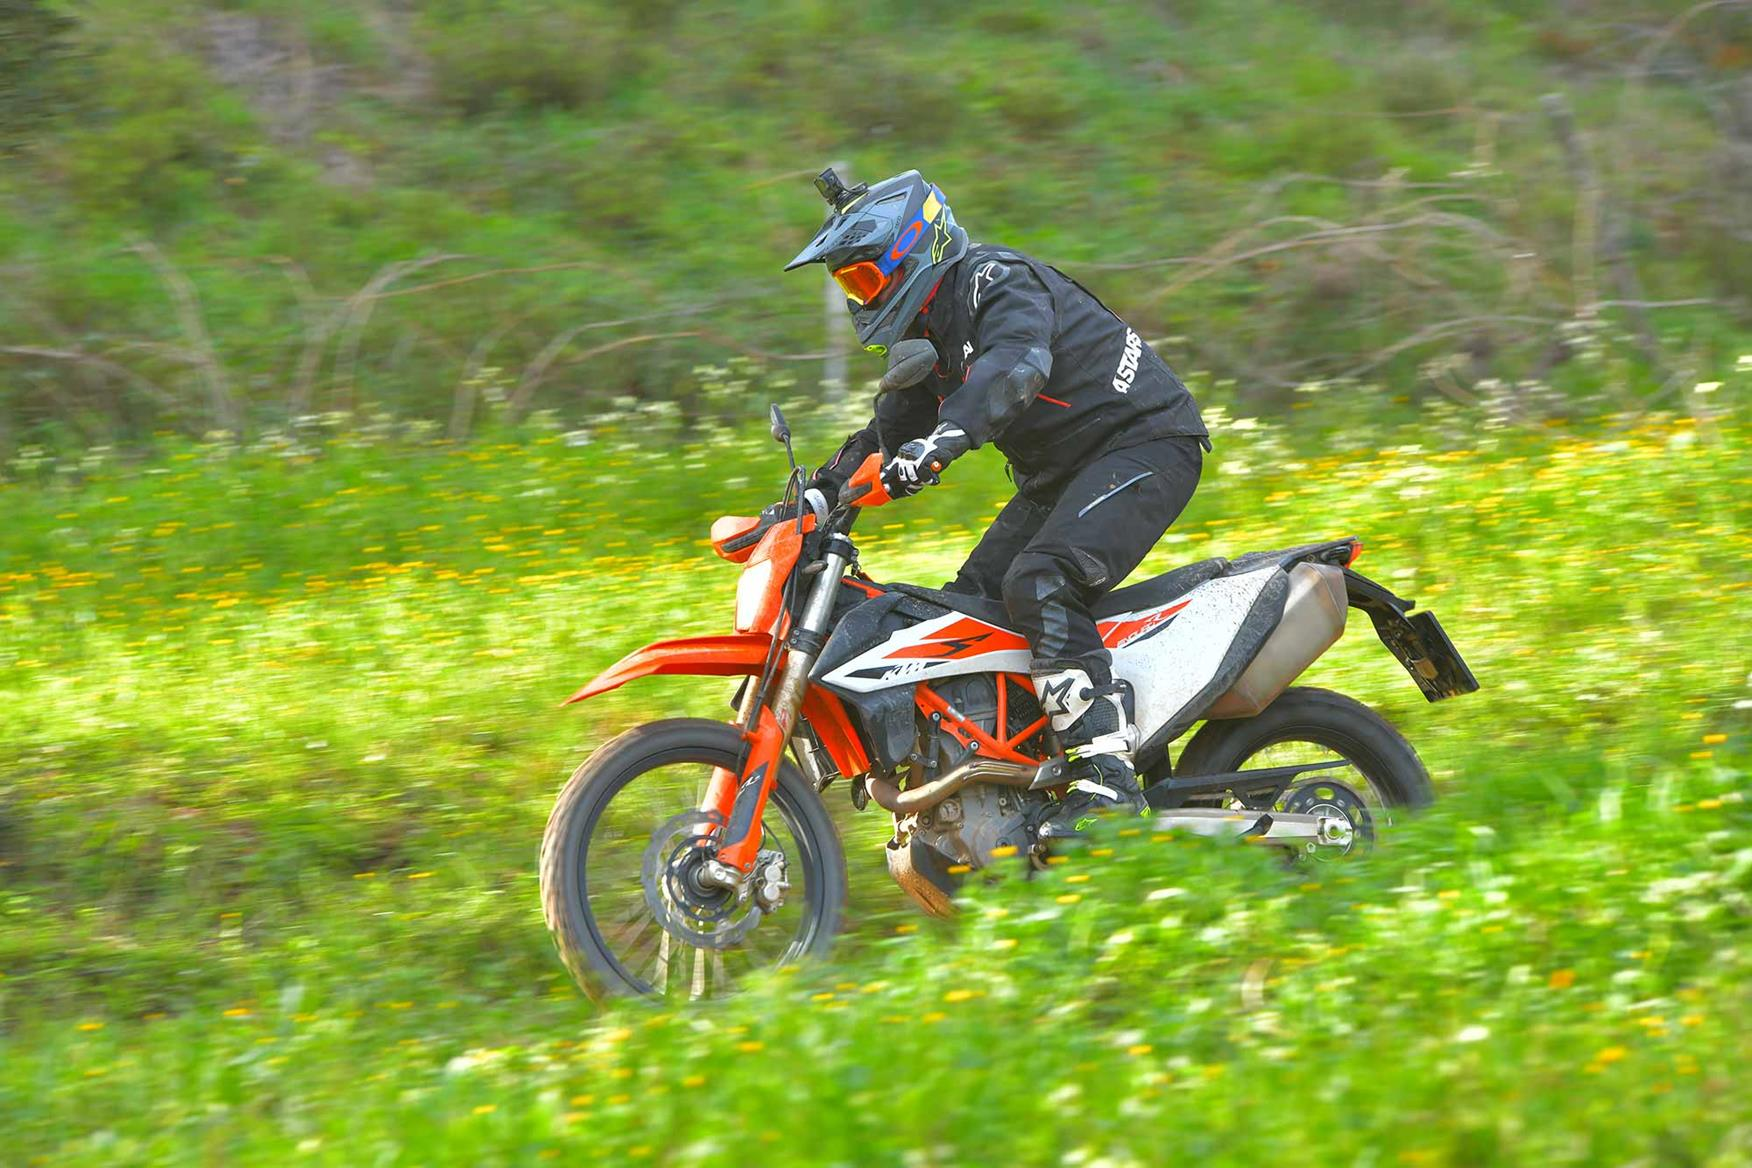 KTM 690 ENDURO R (2019-on) Review